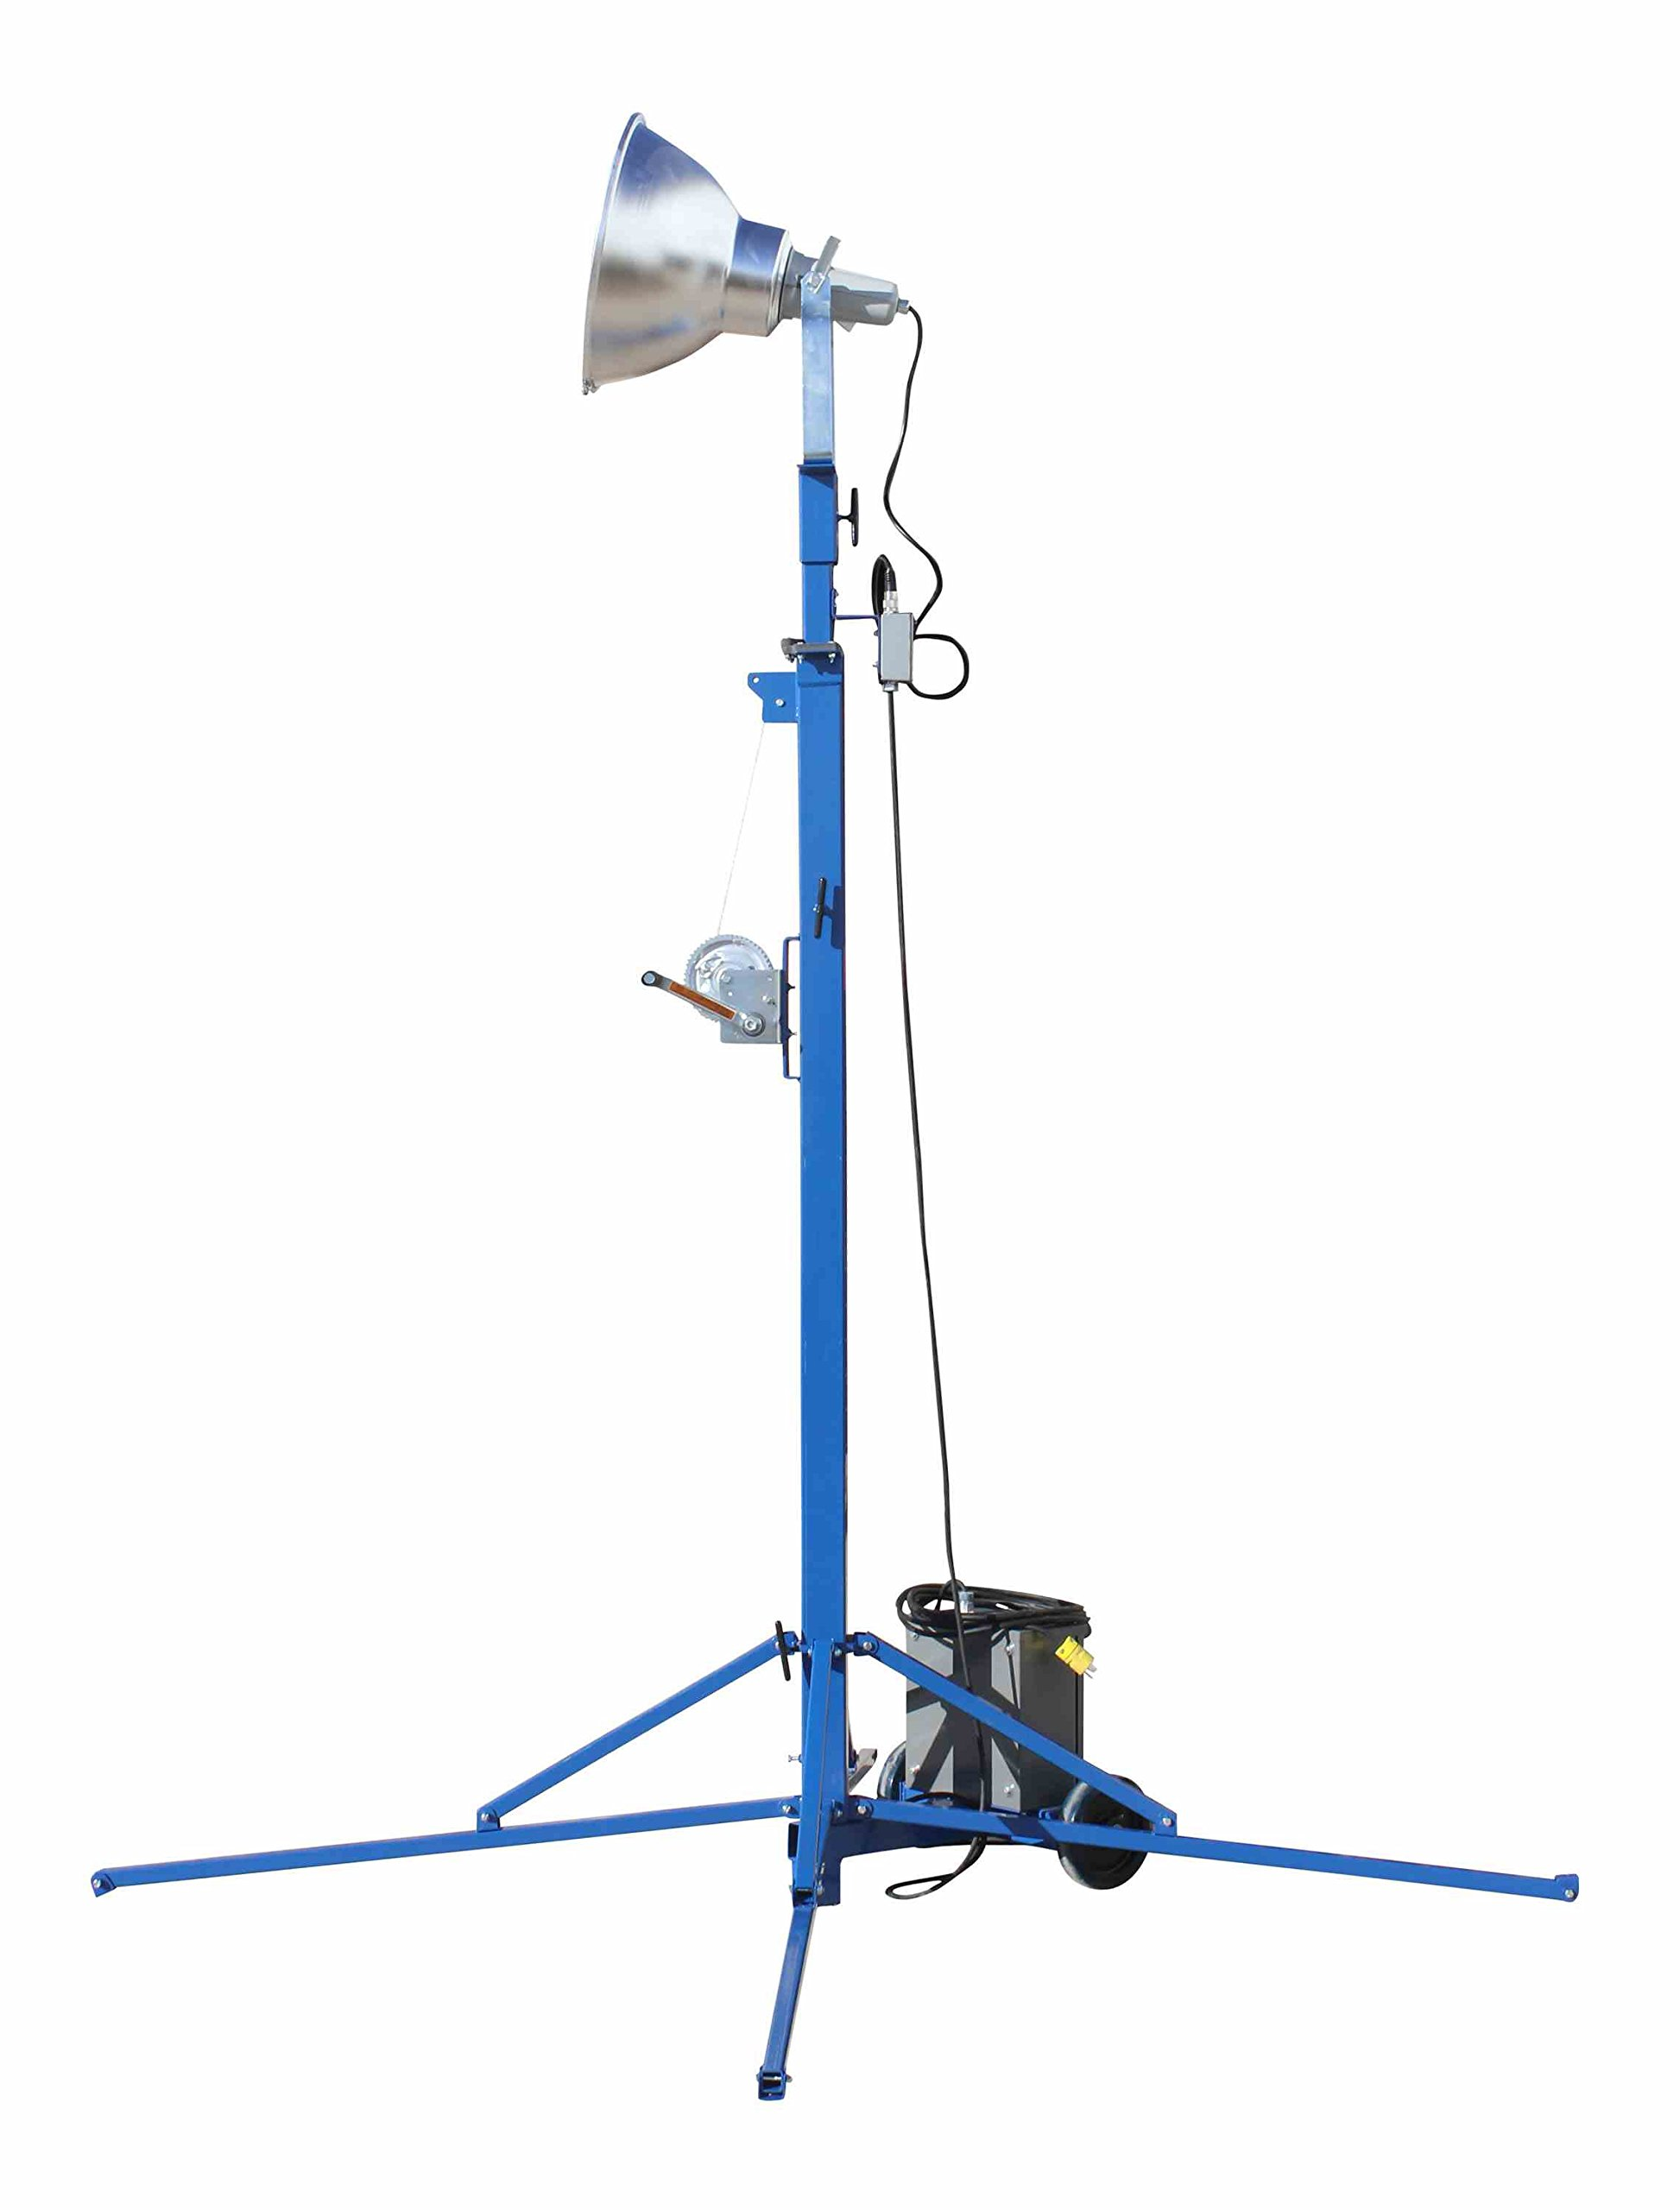 Portable Light Tower - 1000 Watt Metal Halide - Covers 23,000 SF - Extends to 12 feet(-240 Volts) by Larson Electronics (Image #4)